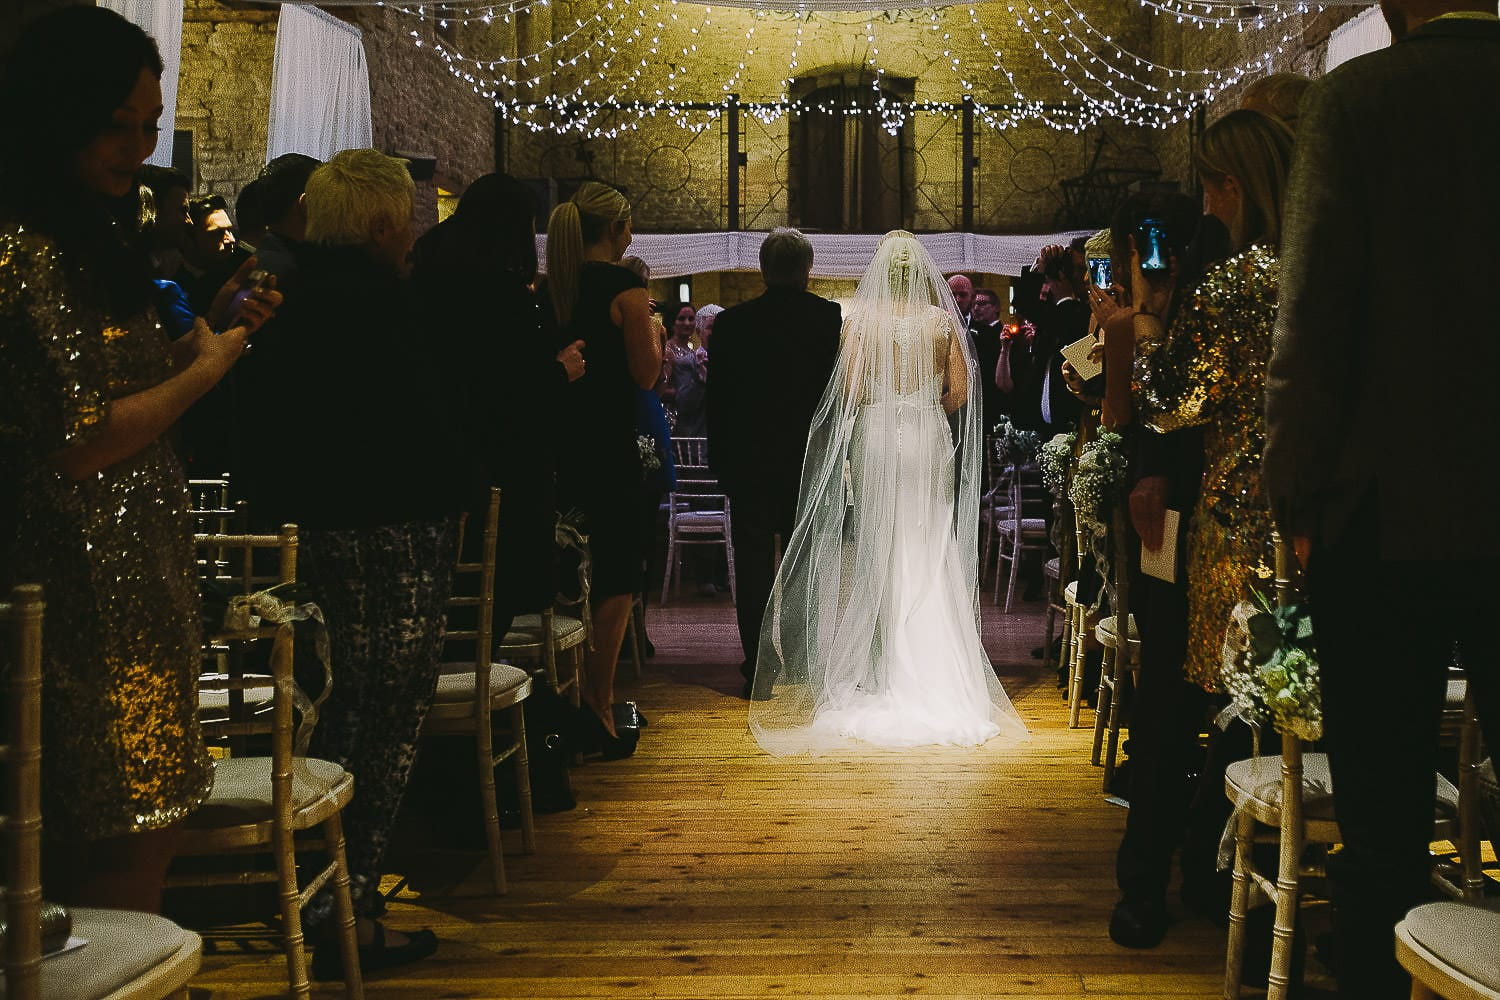 The bride and her father walk down the aisle at The Great Tythe Barn